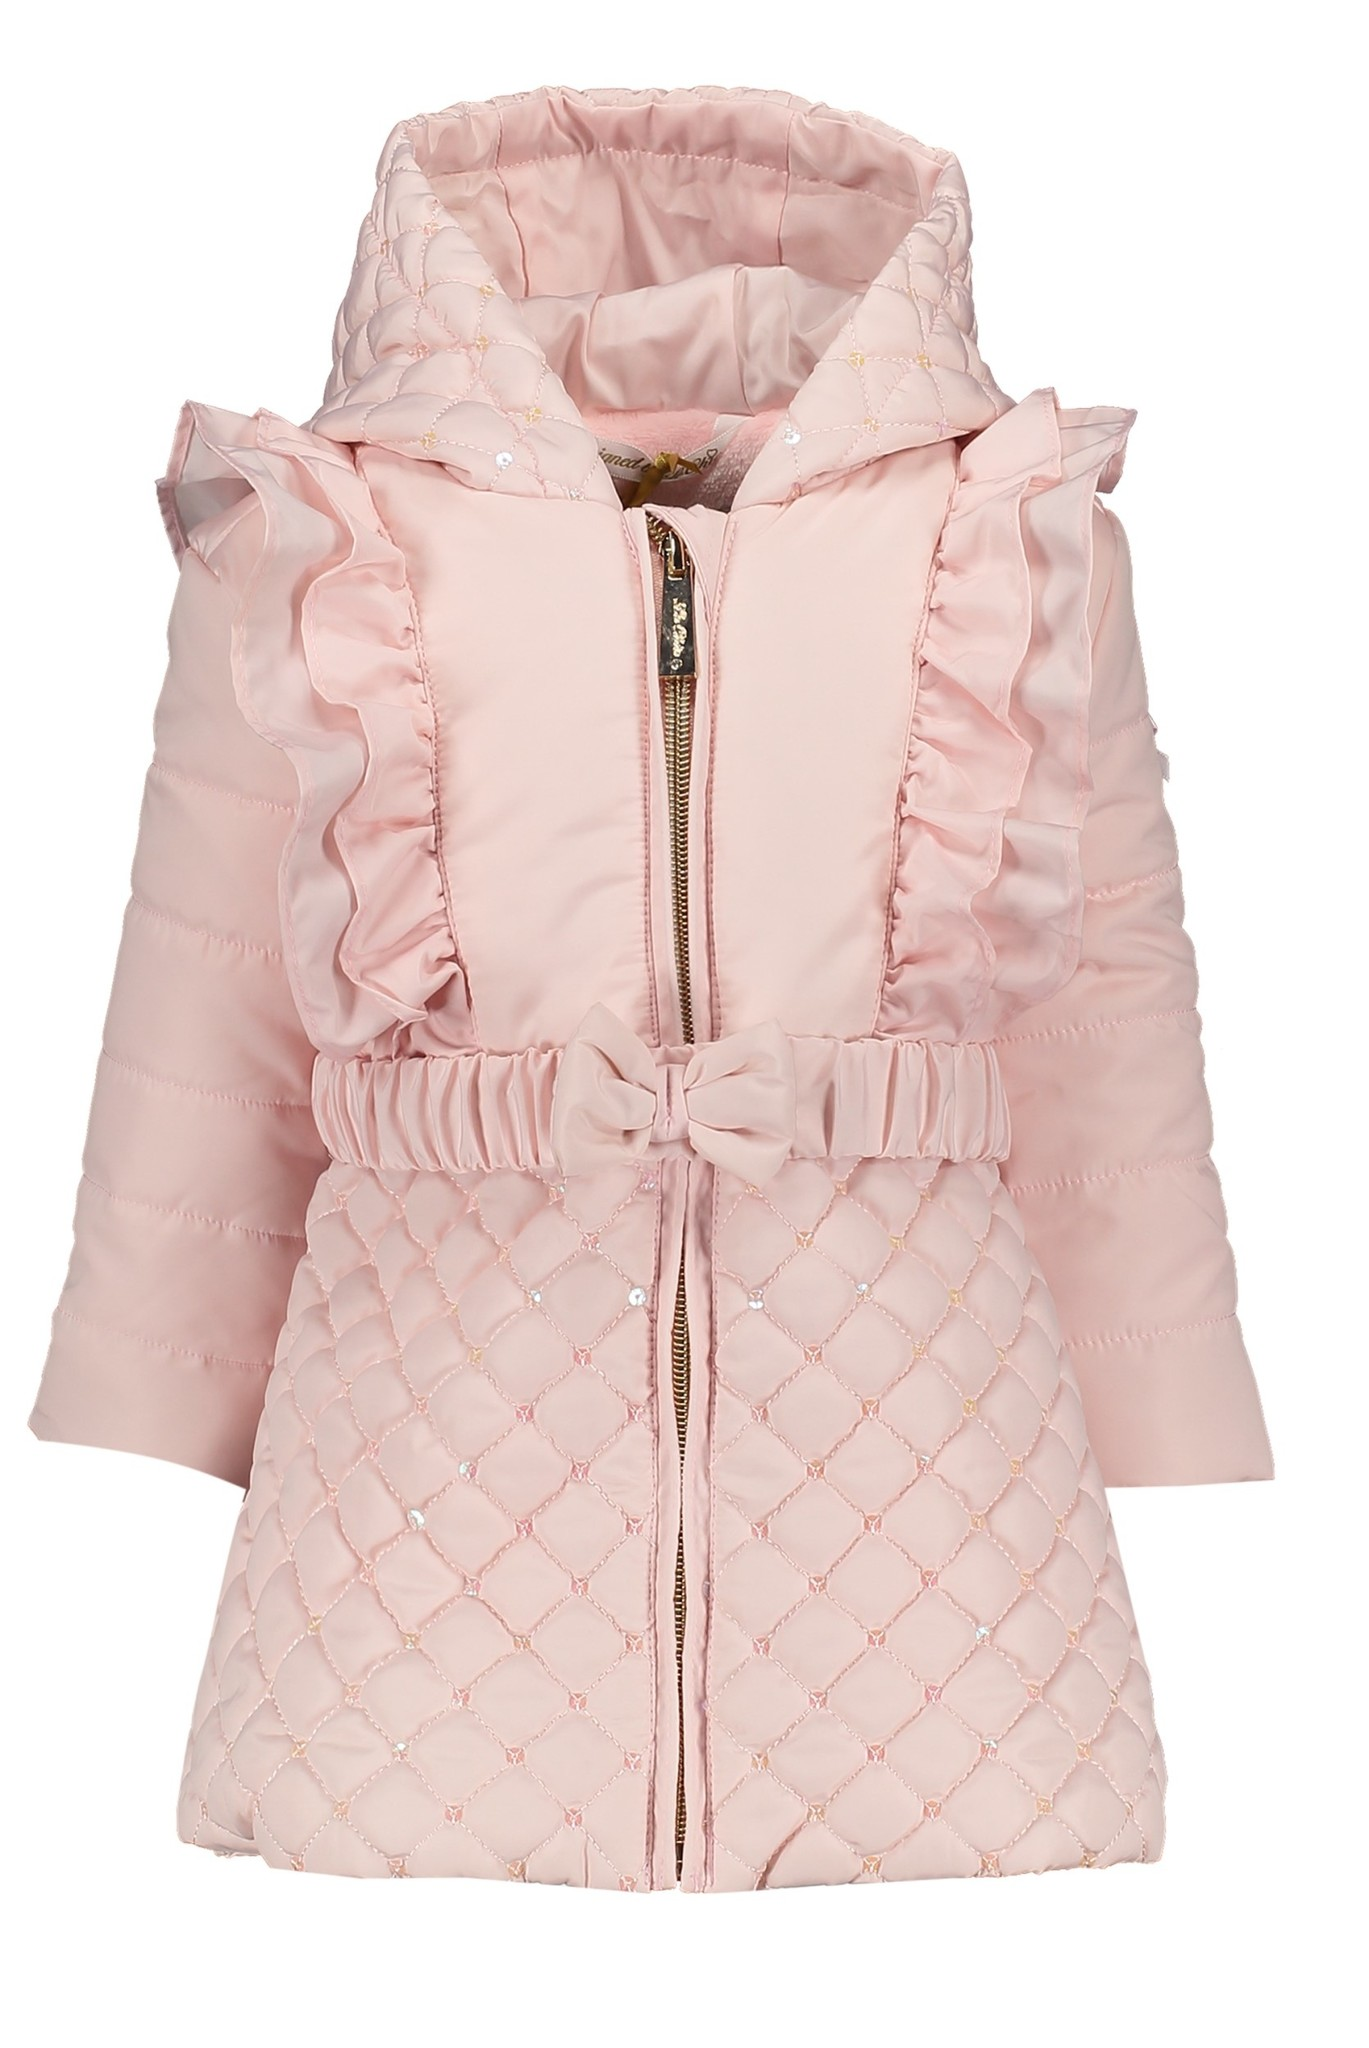 Lechic LeChic C007-7217 Pink coat with Diamond Quilting